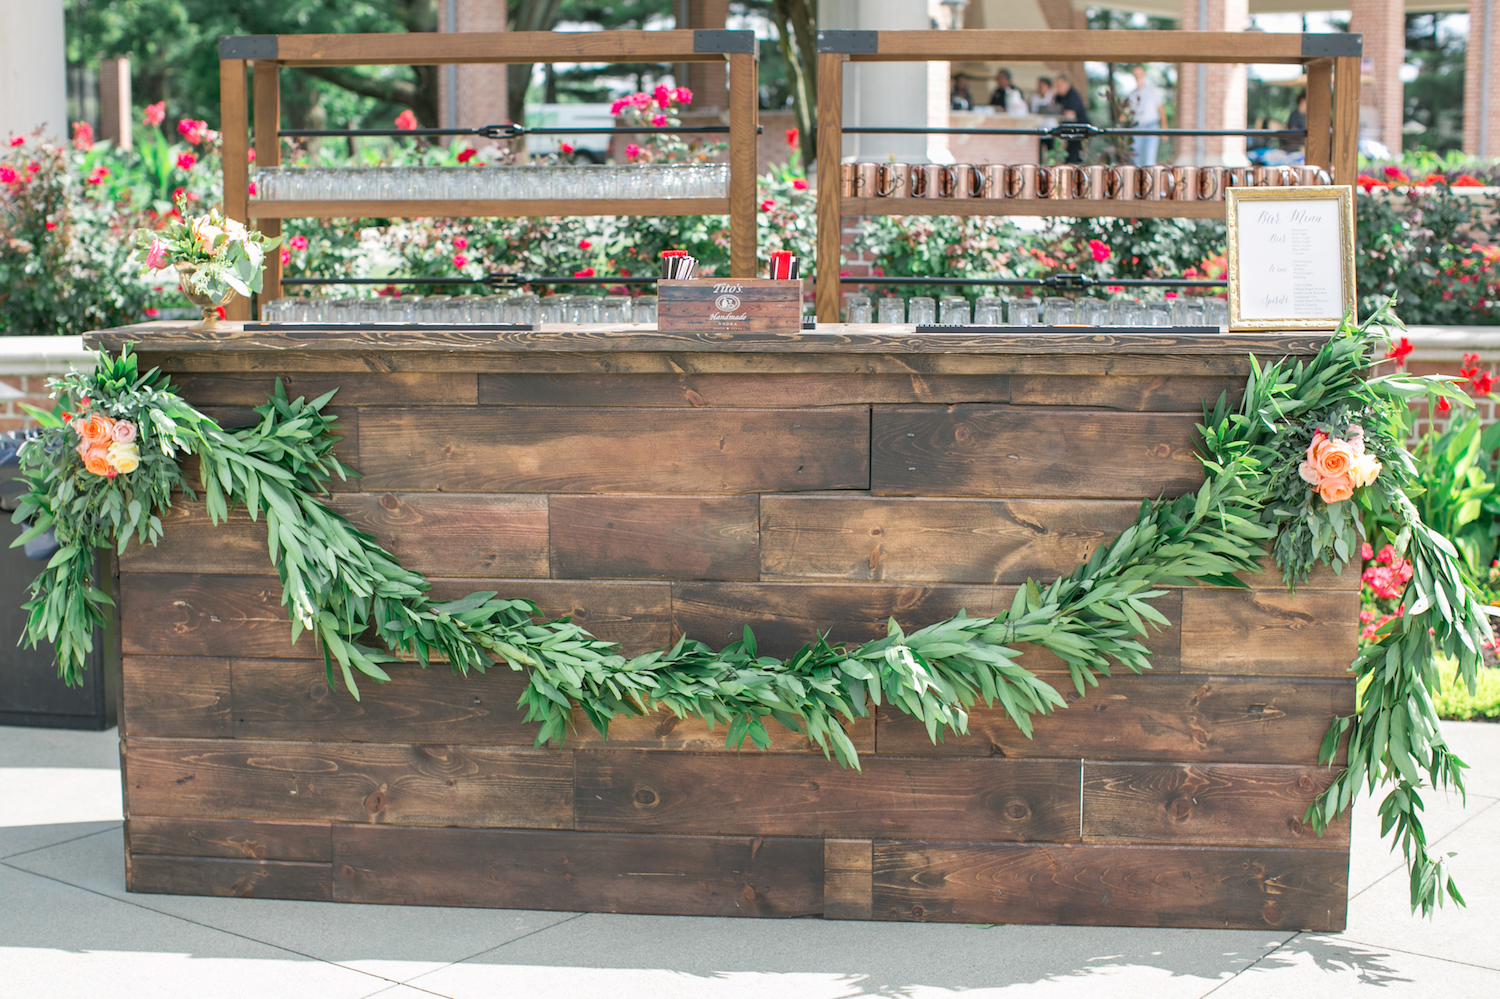 wedding reception with large wooden bar with garland of greenery across the front